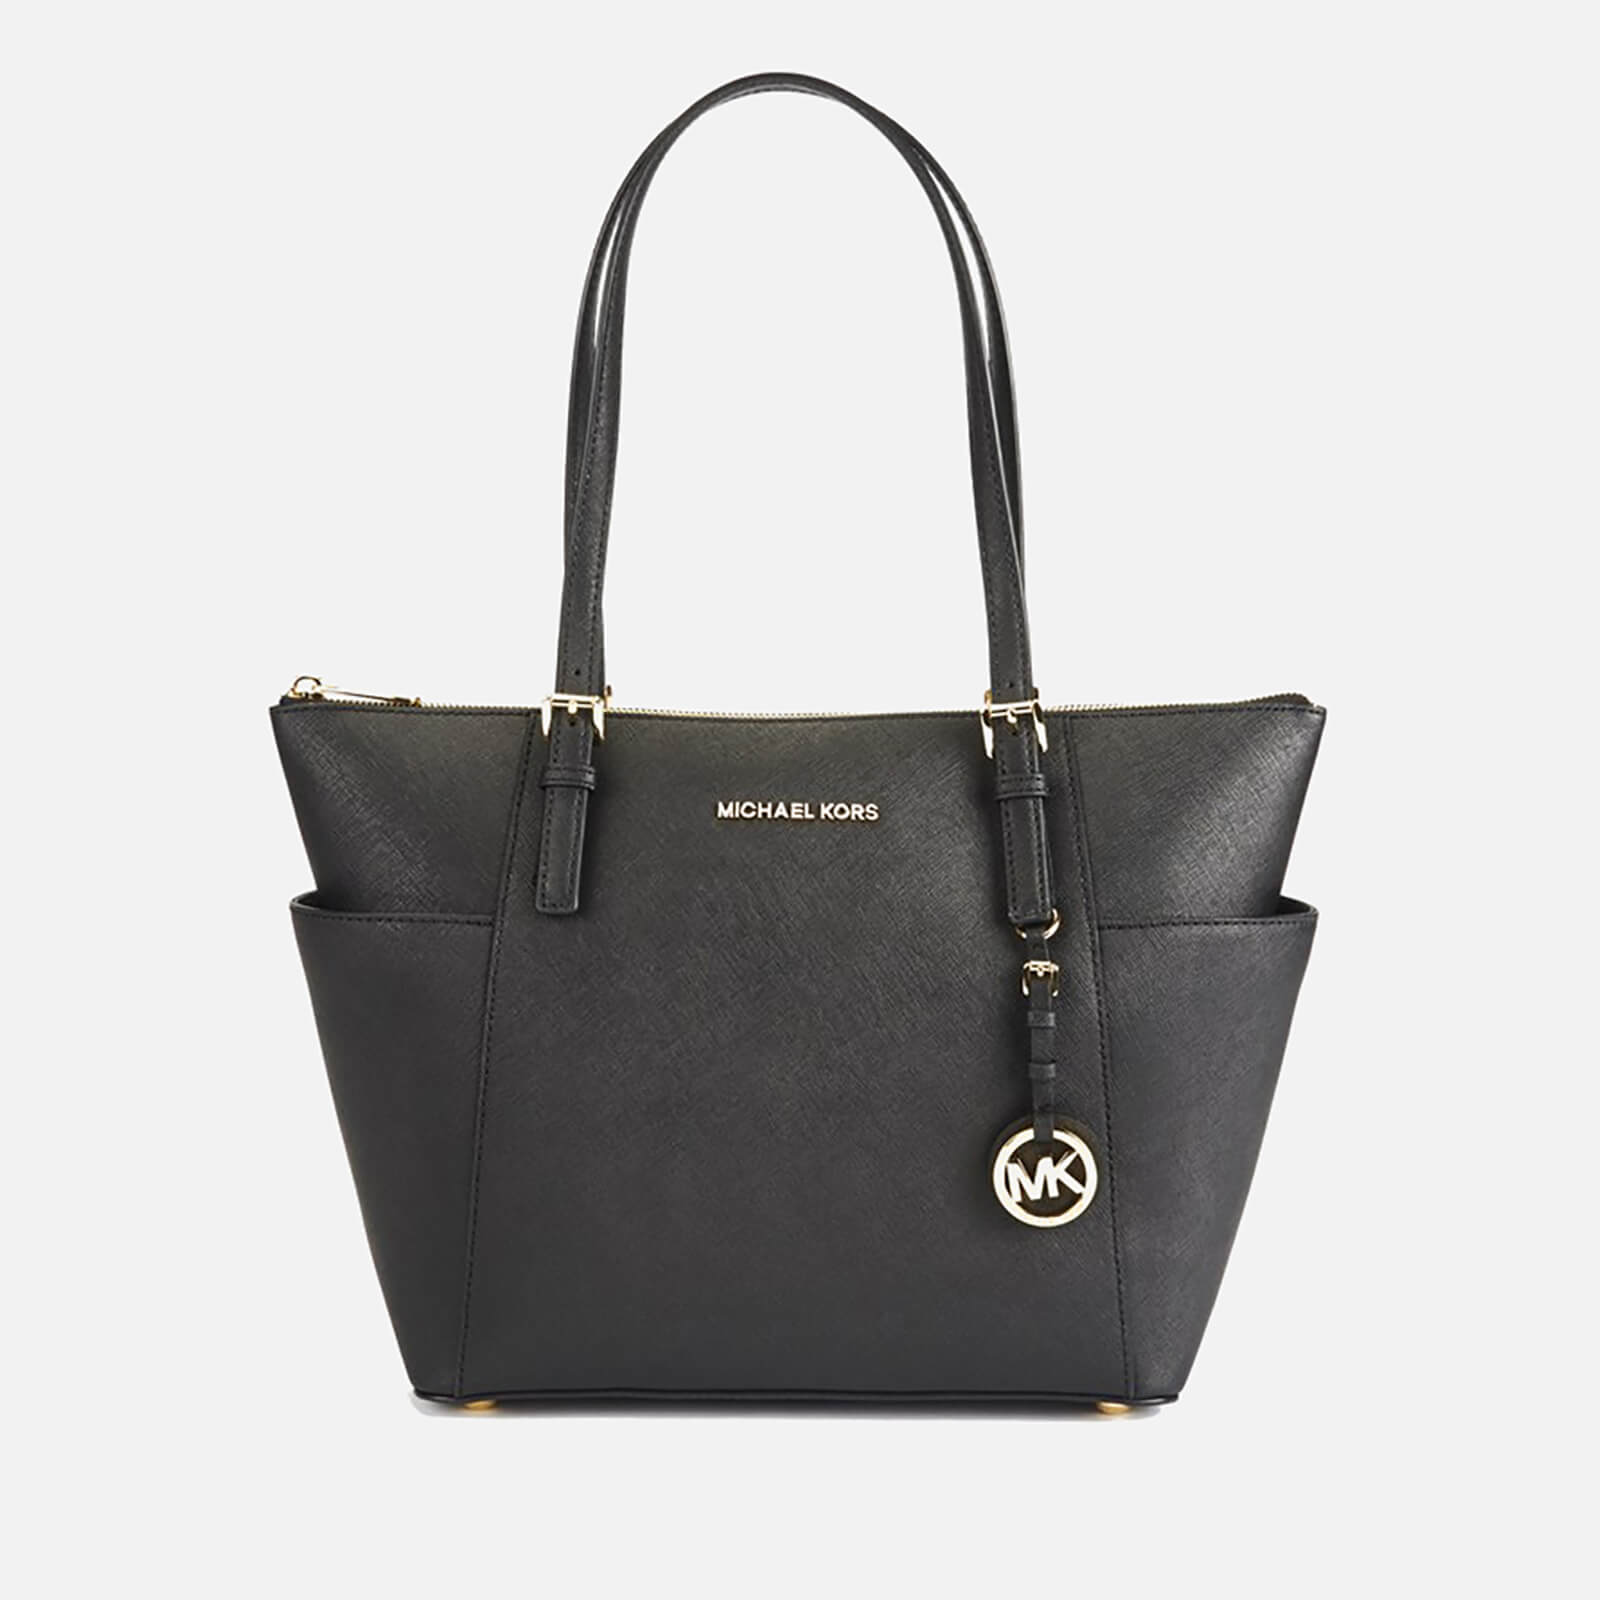 890a294fbe54 MICHAEL MICHAEL KORS Women's Jet Set East West Top Zip Tote Bag - Black -  Free UK Delivery over £50